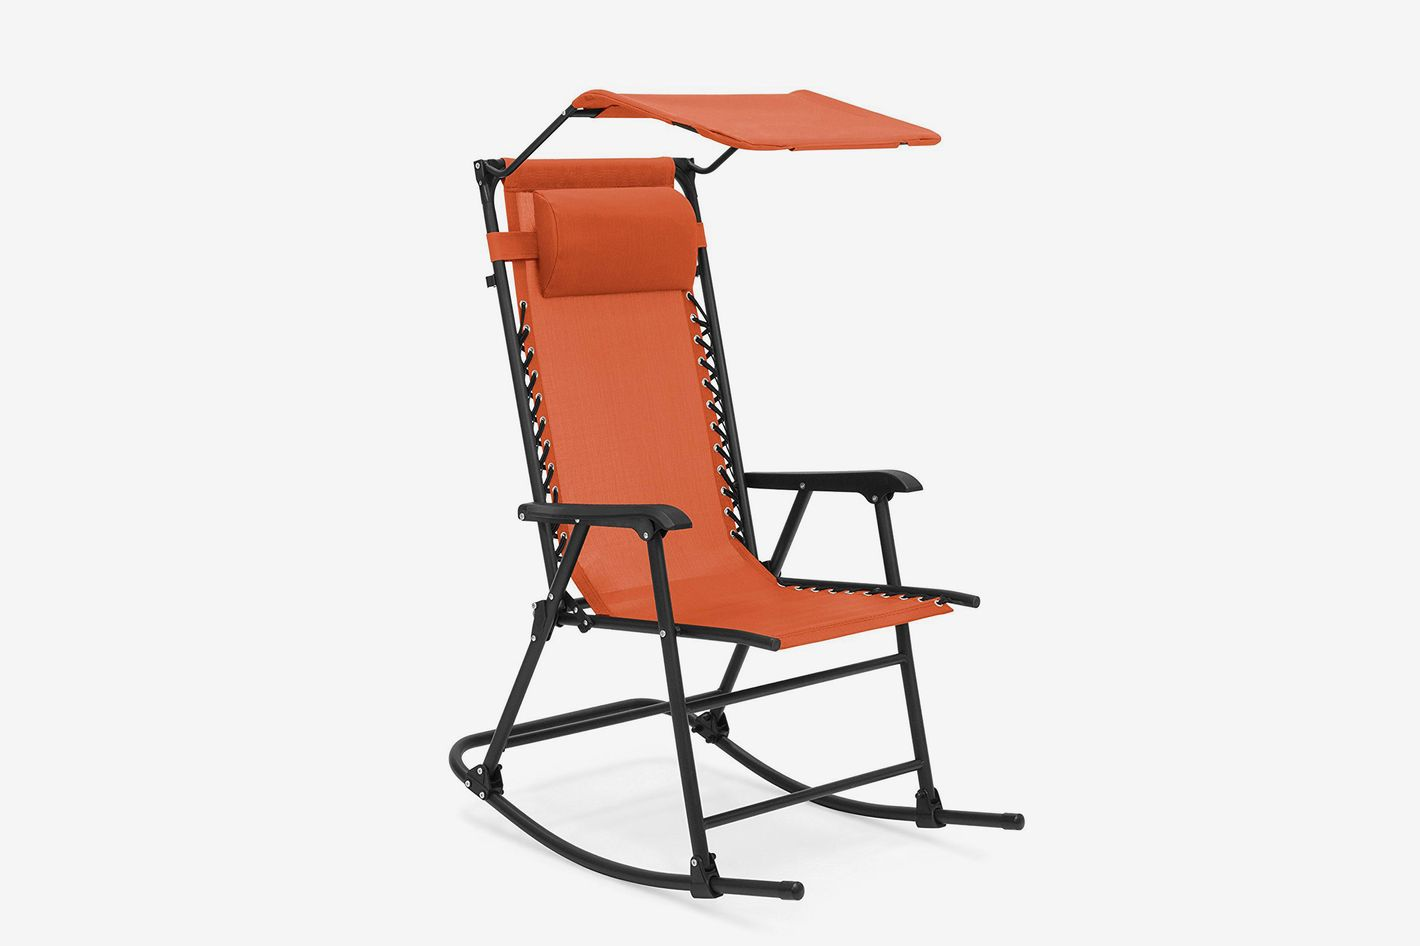 Best Choice Products Foldable Zero Gravity Rocking Patio Recliner Chair With Sunshade Canopy